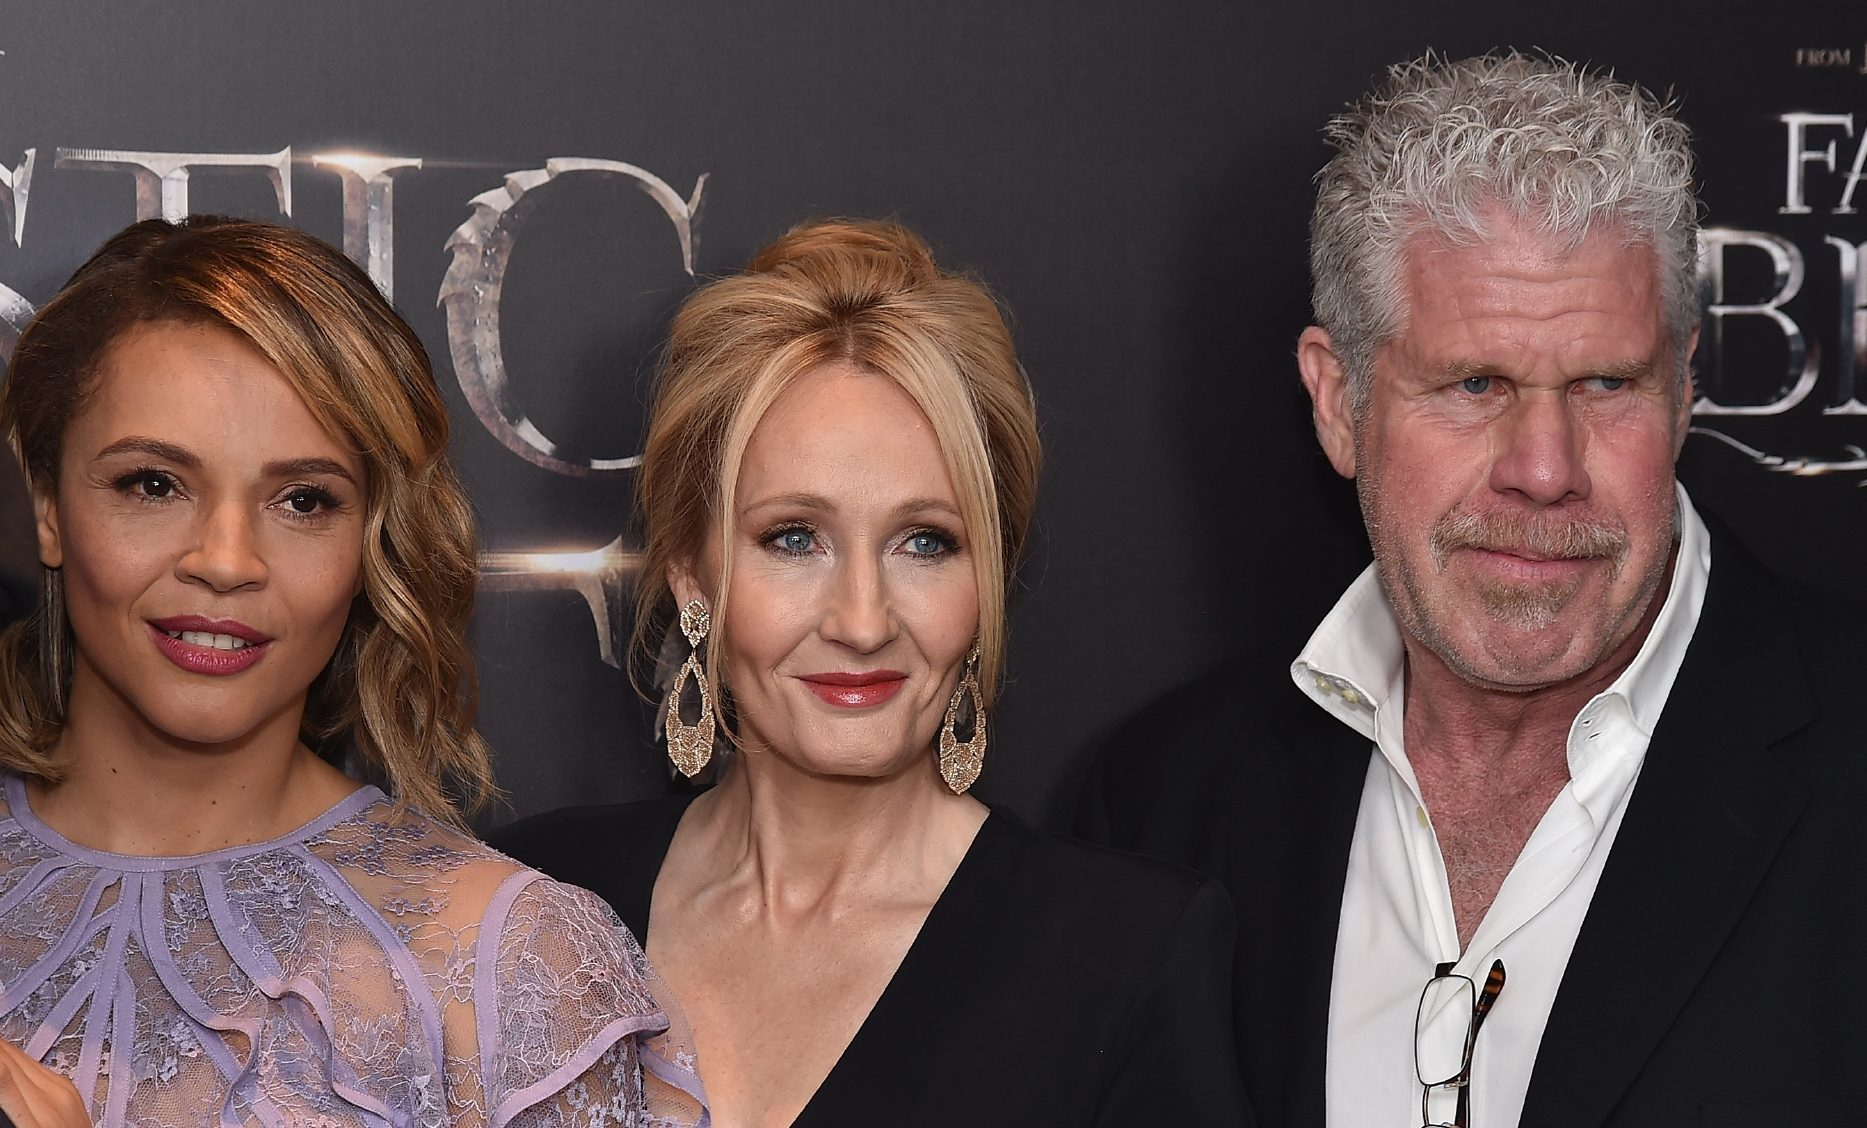 Carmen Ejogo, JK.Rowling and Ron Perlman at the premiere in New York.